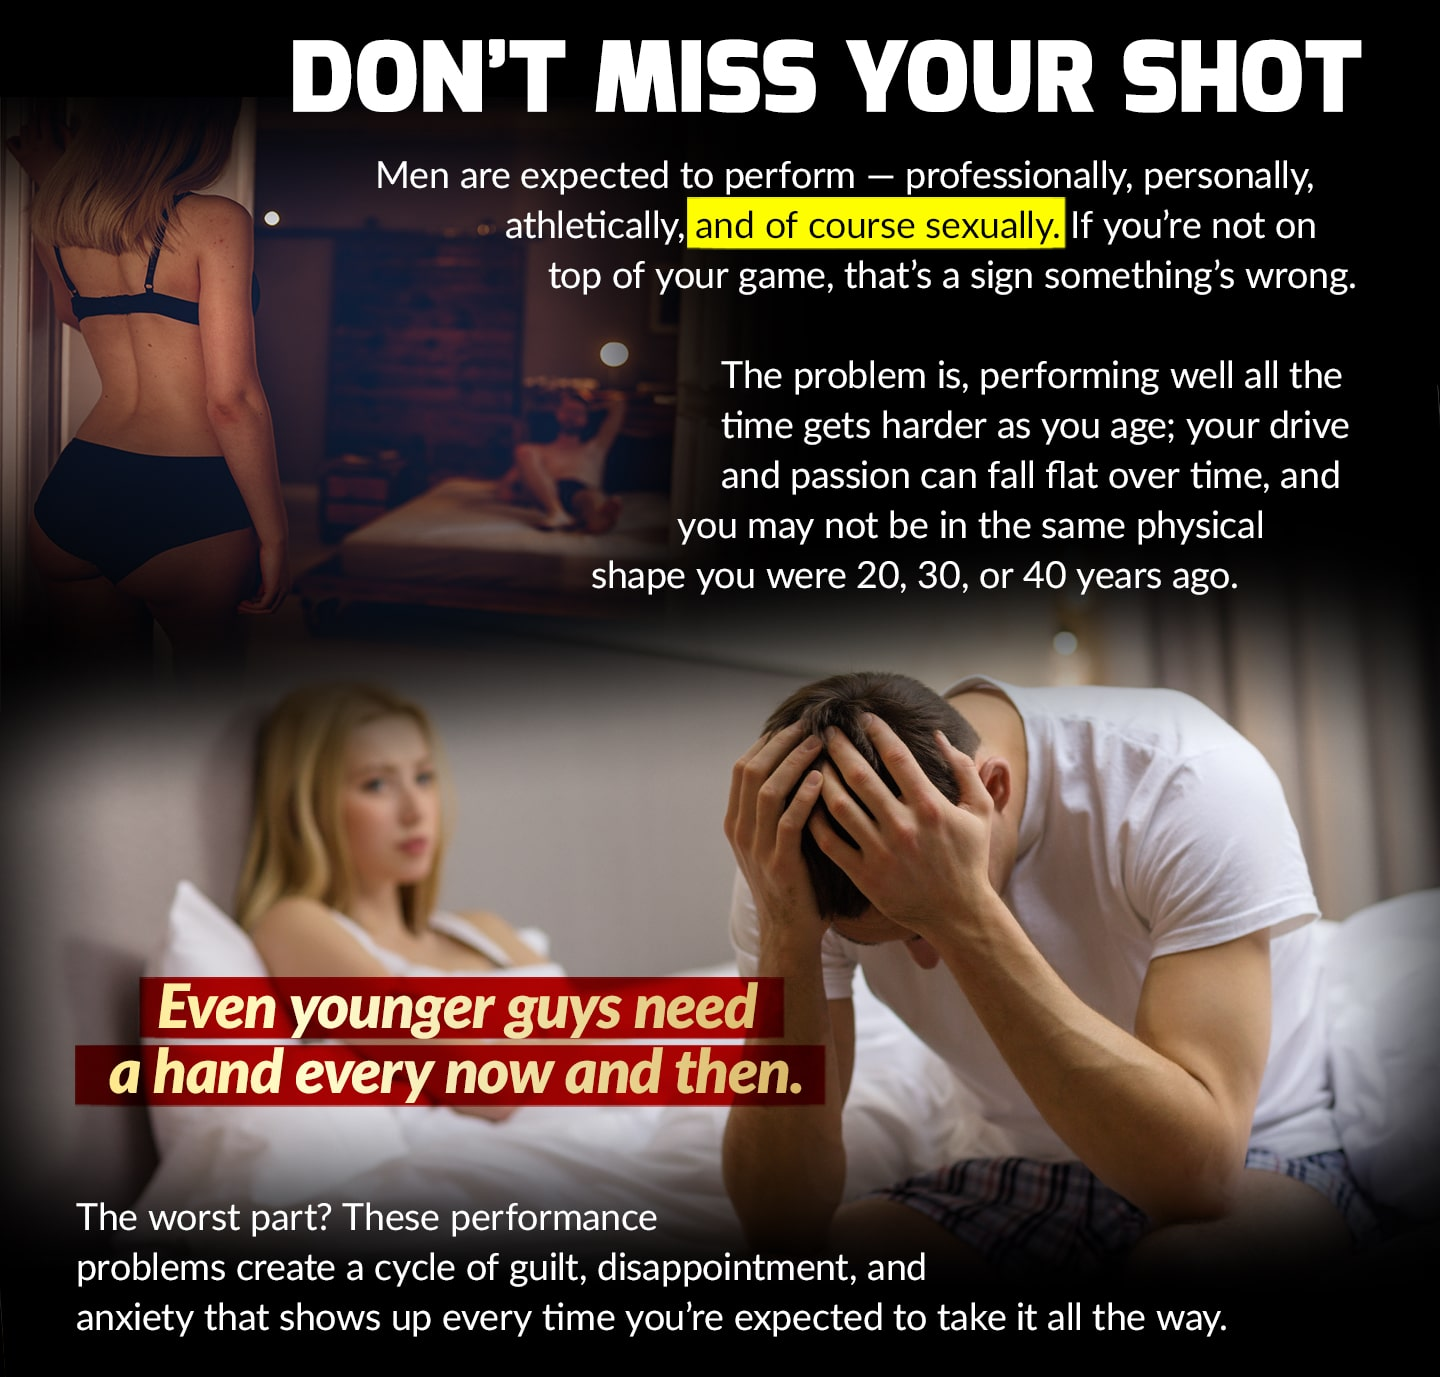 DON'T MISS YOUR SHOT. Men are expected to perform – professionally, personally, athletically, and of course sexually. If you're not on top of your game, that's a sign something's wrong. The problem is that performing well all the time gets harder as you age; your drive and passion can fall flat over time, and you may not be in the same physical shape you were 20, 30, or 40 years ago. Even younger guys need a hand every now and then. The worst part? These performances create a cycle of guilt, disappointment, and anxiety that shows up every time you're expected to take it all the way.